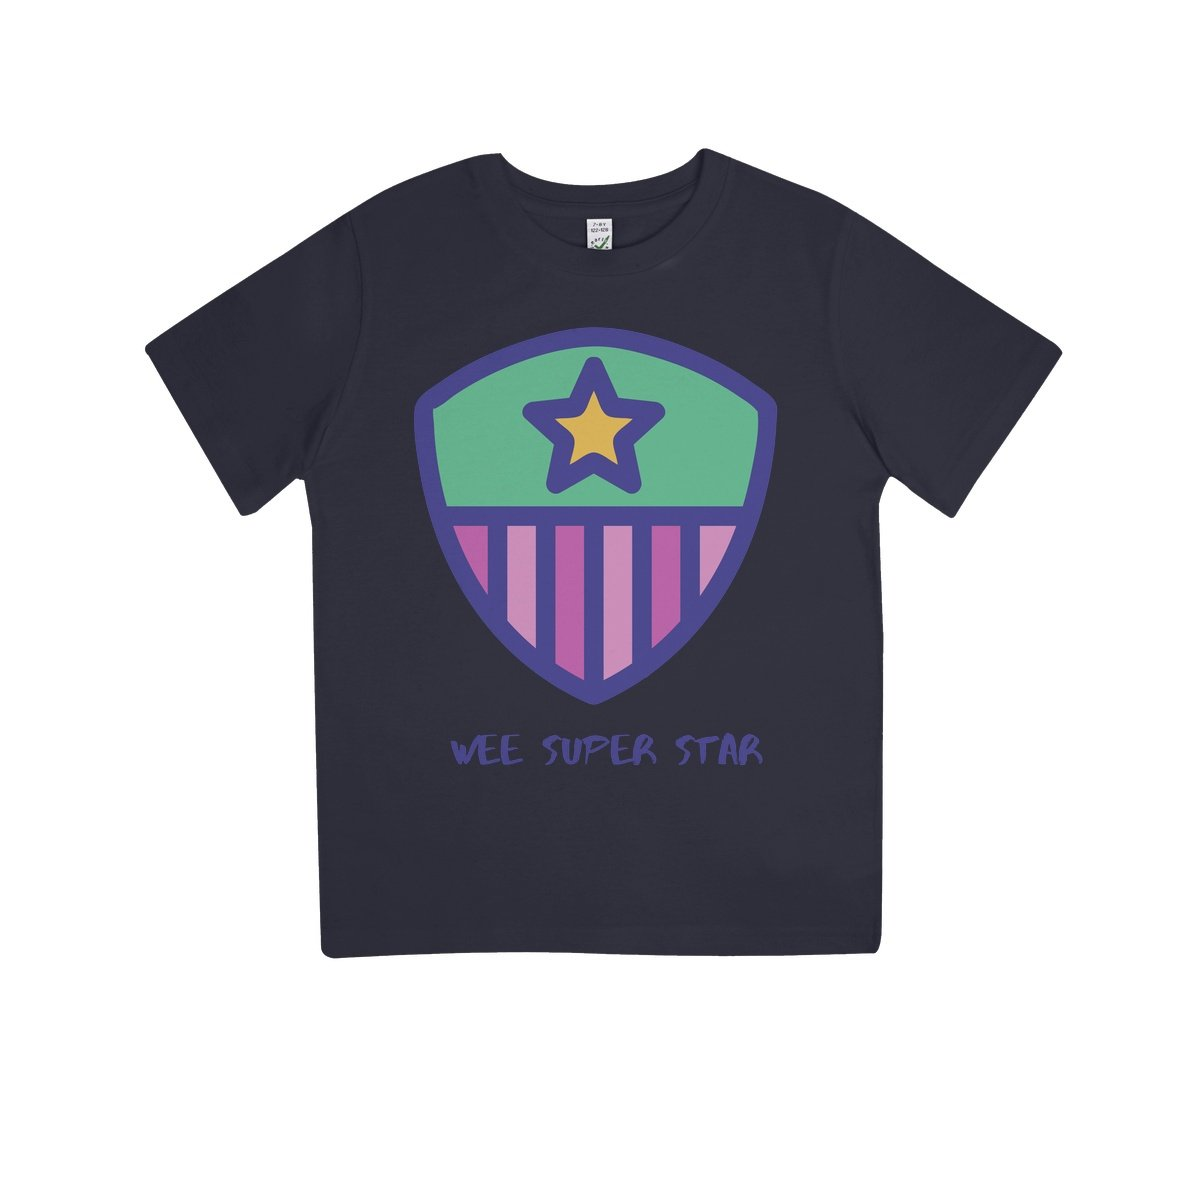 Wee Super Star Kids 100% Organic T-Shirt by stray funk design